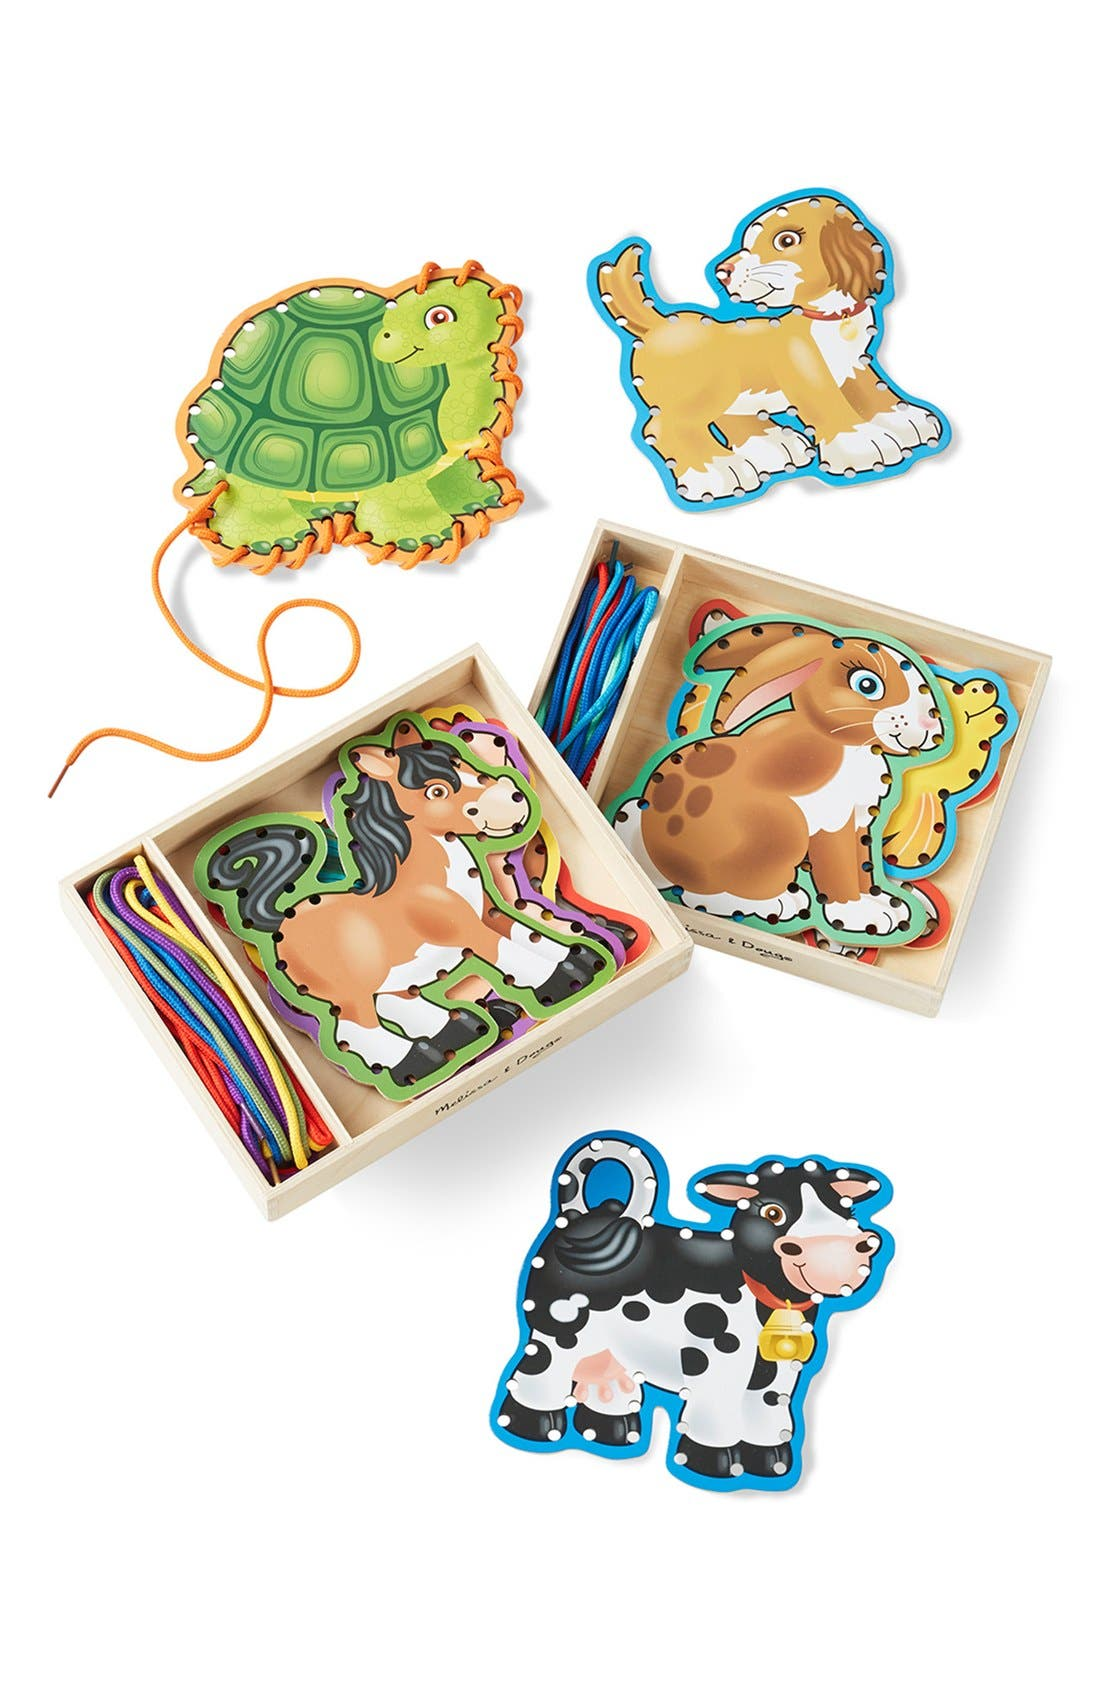 Melissa & Doug 'Lace and Trace' Animal Boards (Set of 2)